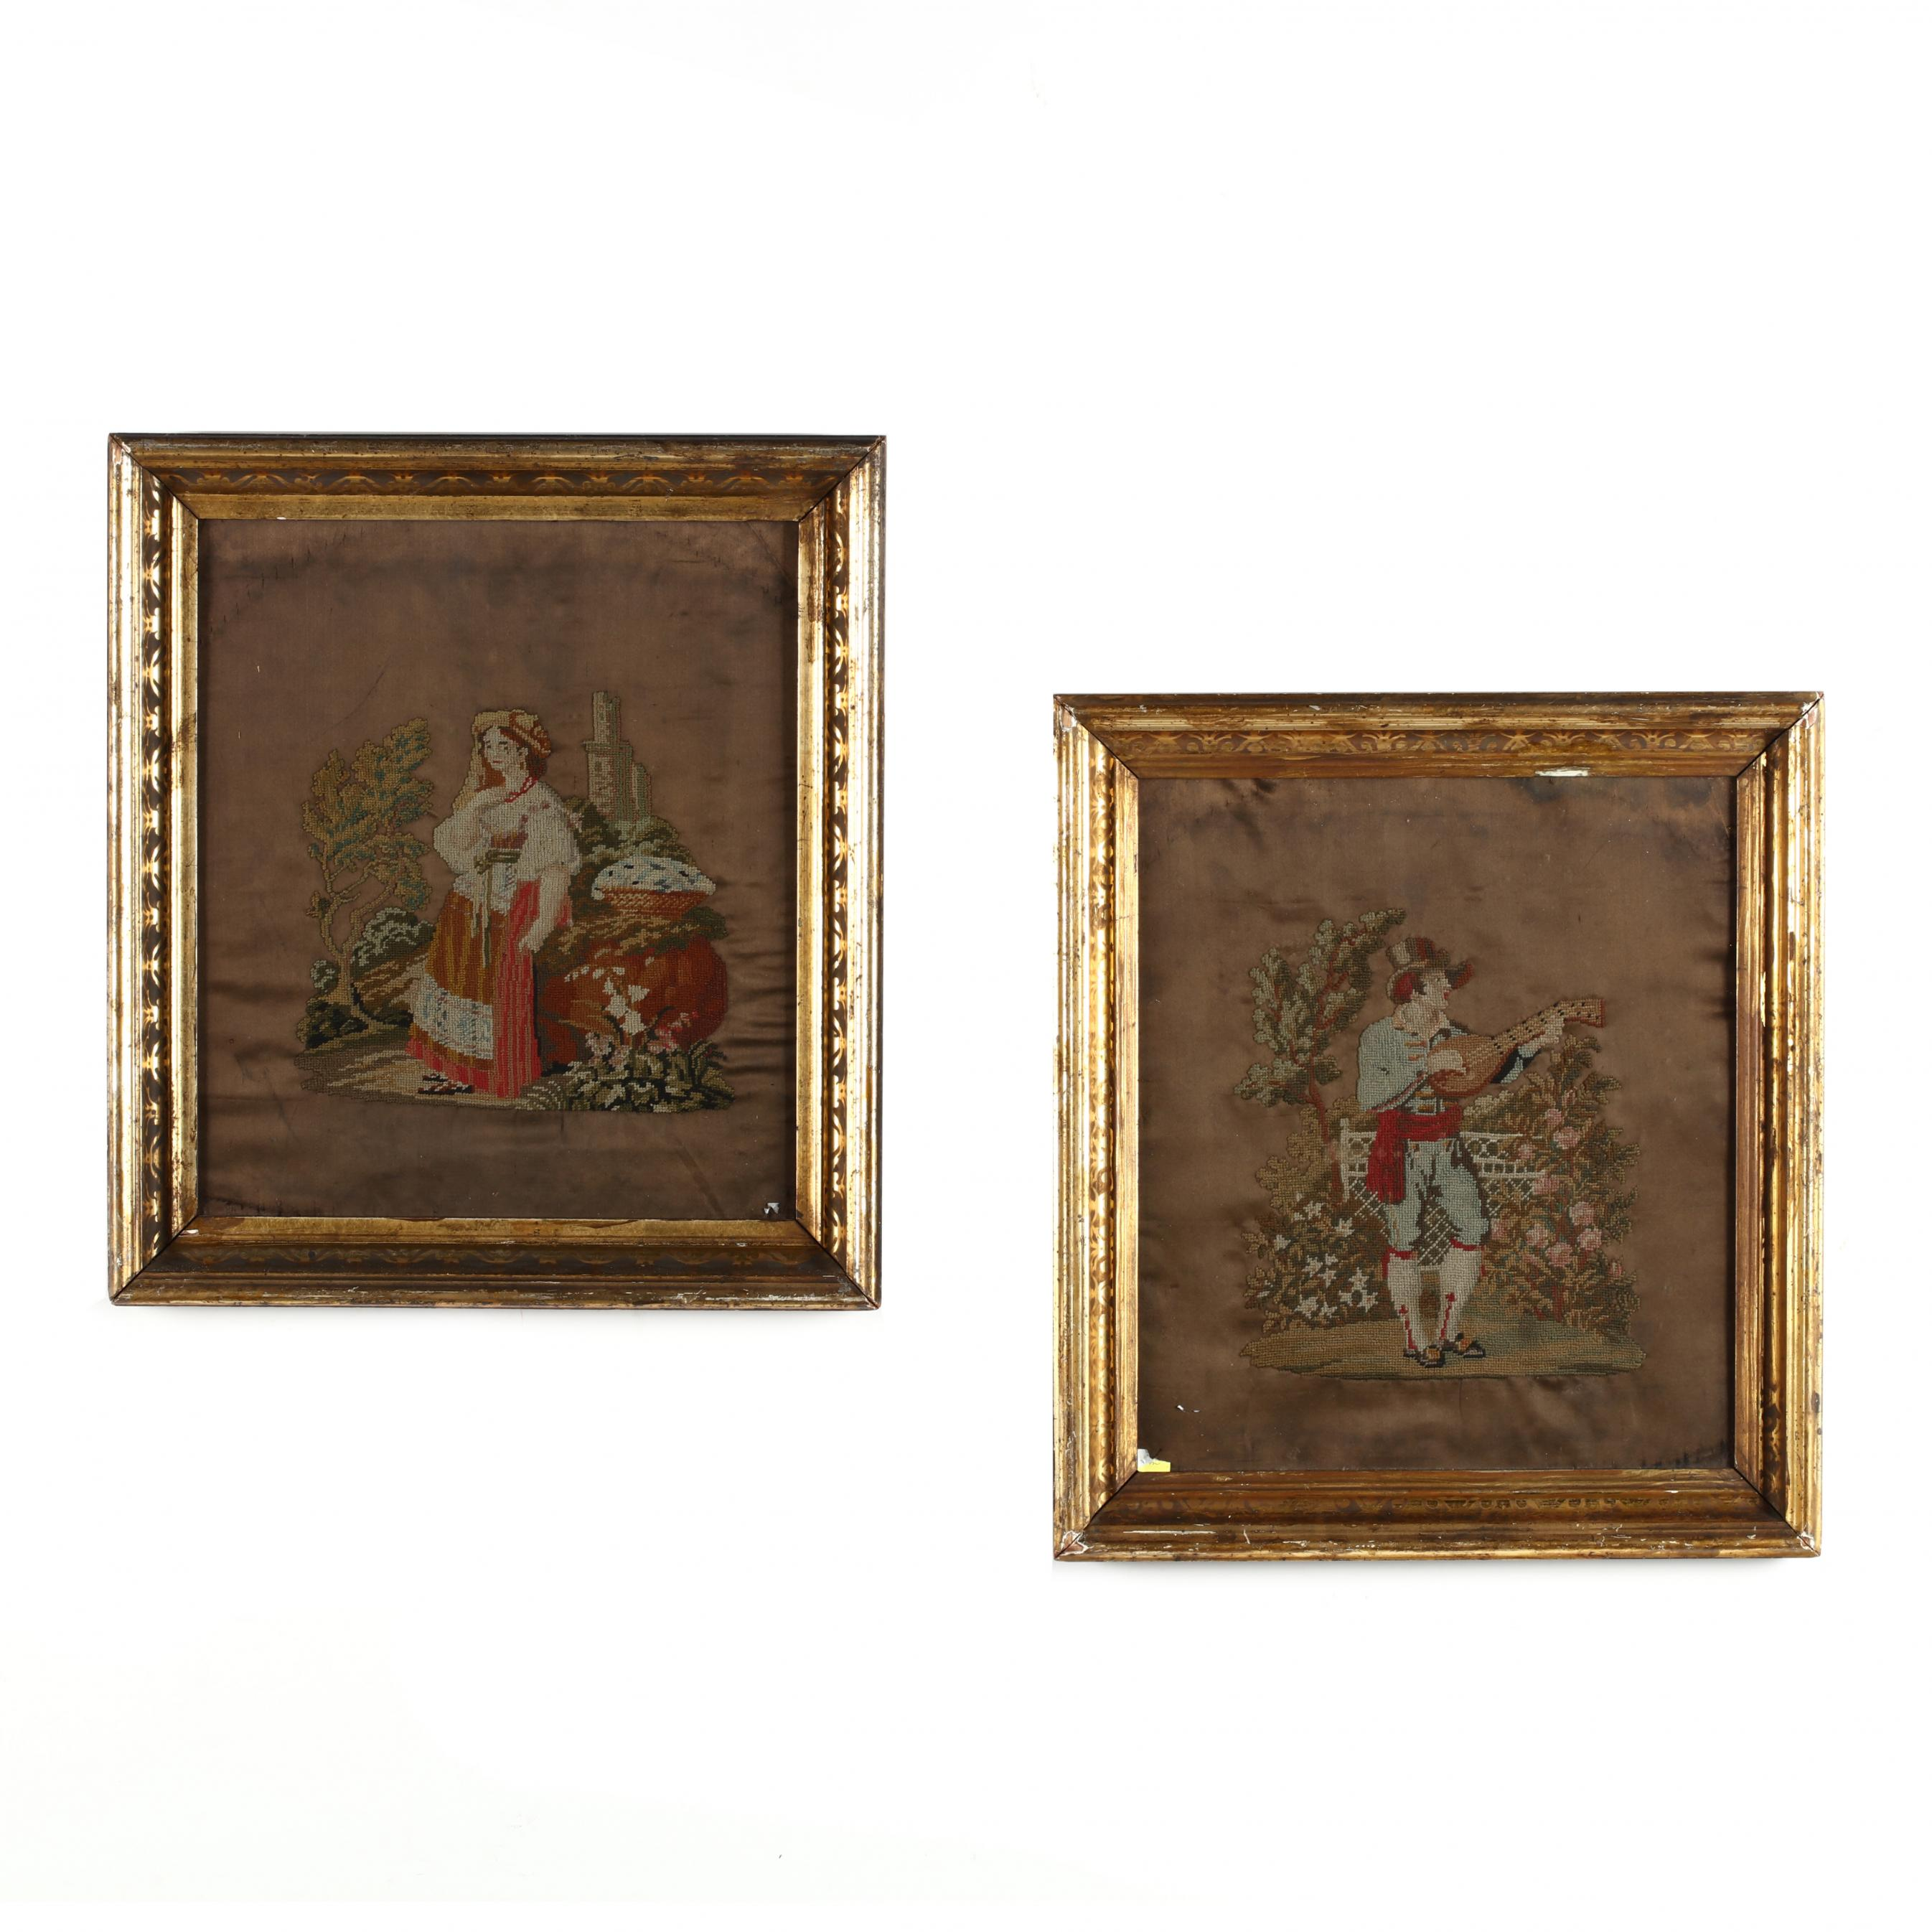 a-pair-of-antique-berlin-woolwork-picture-of-costumed-figures